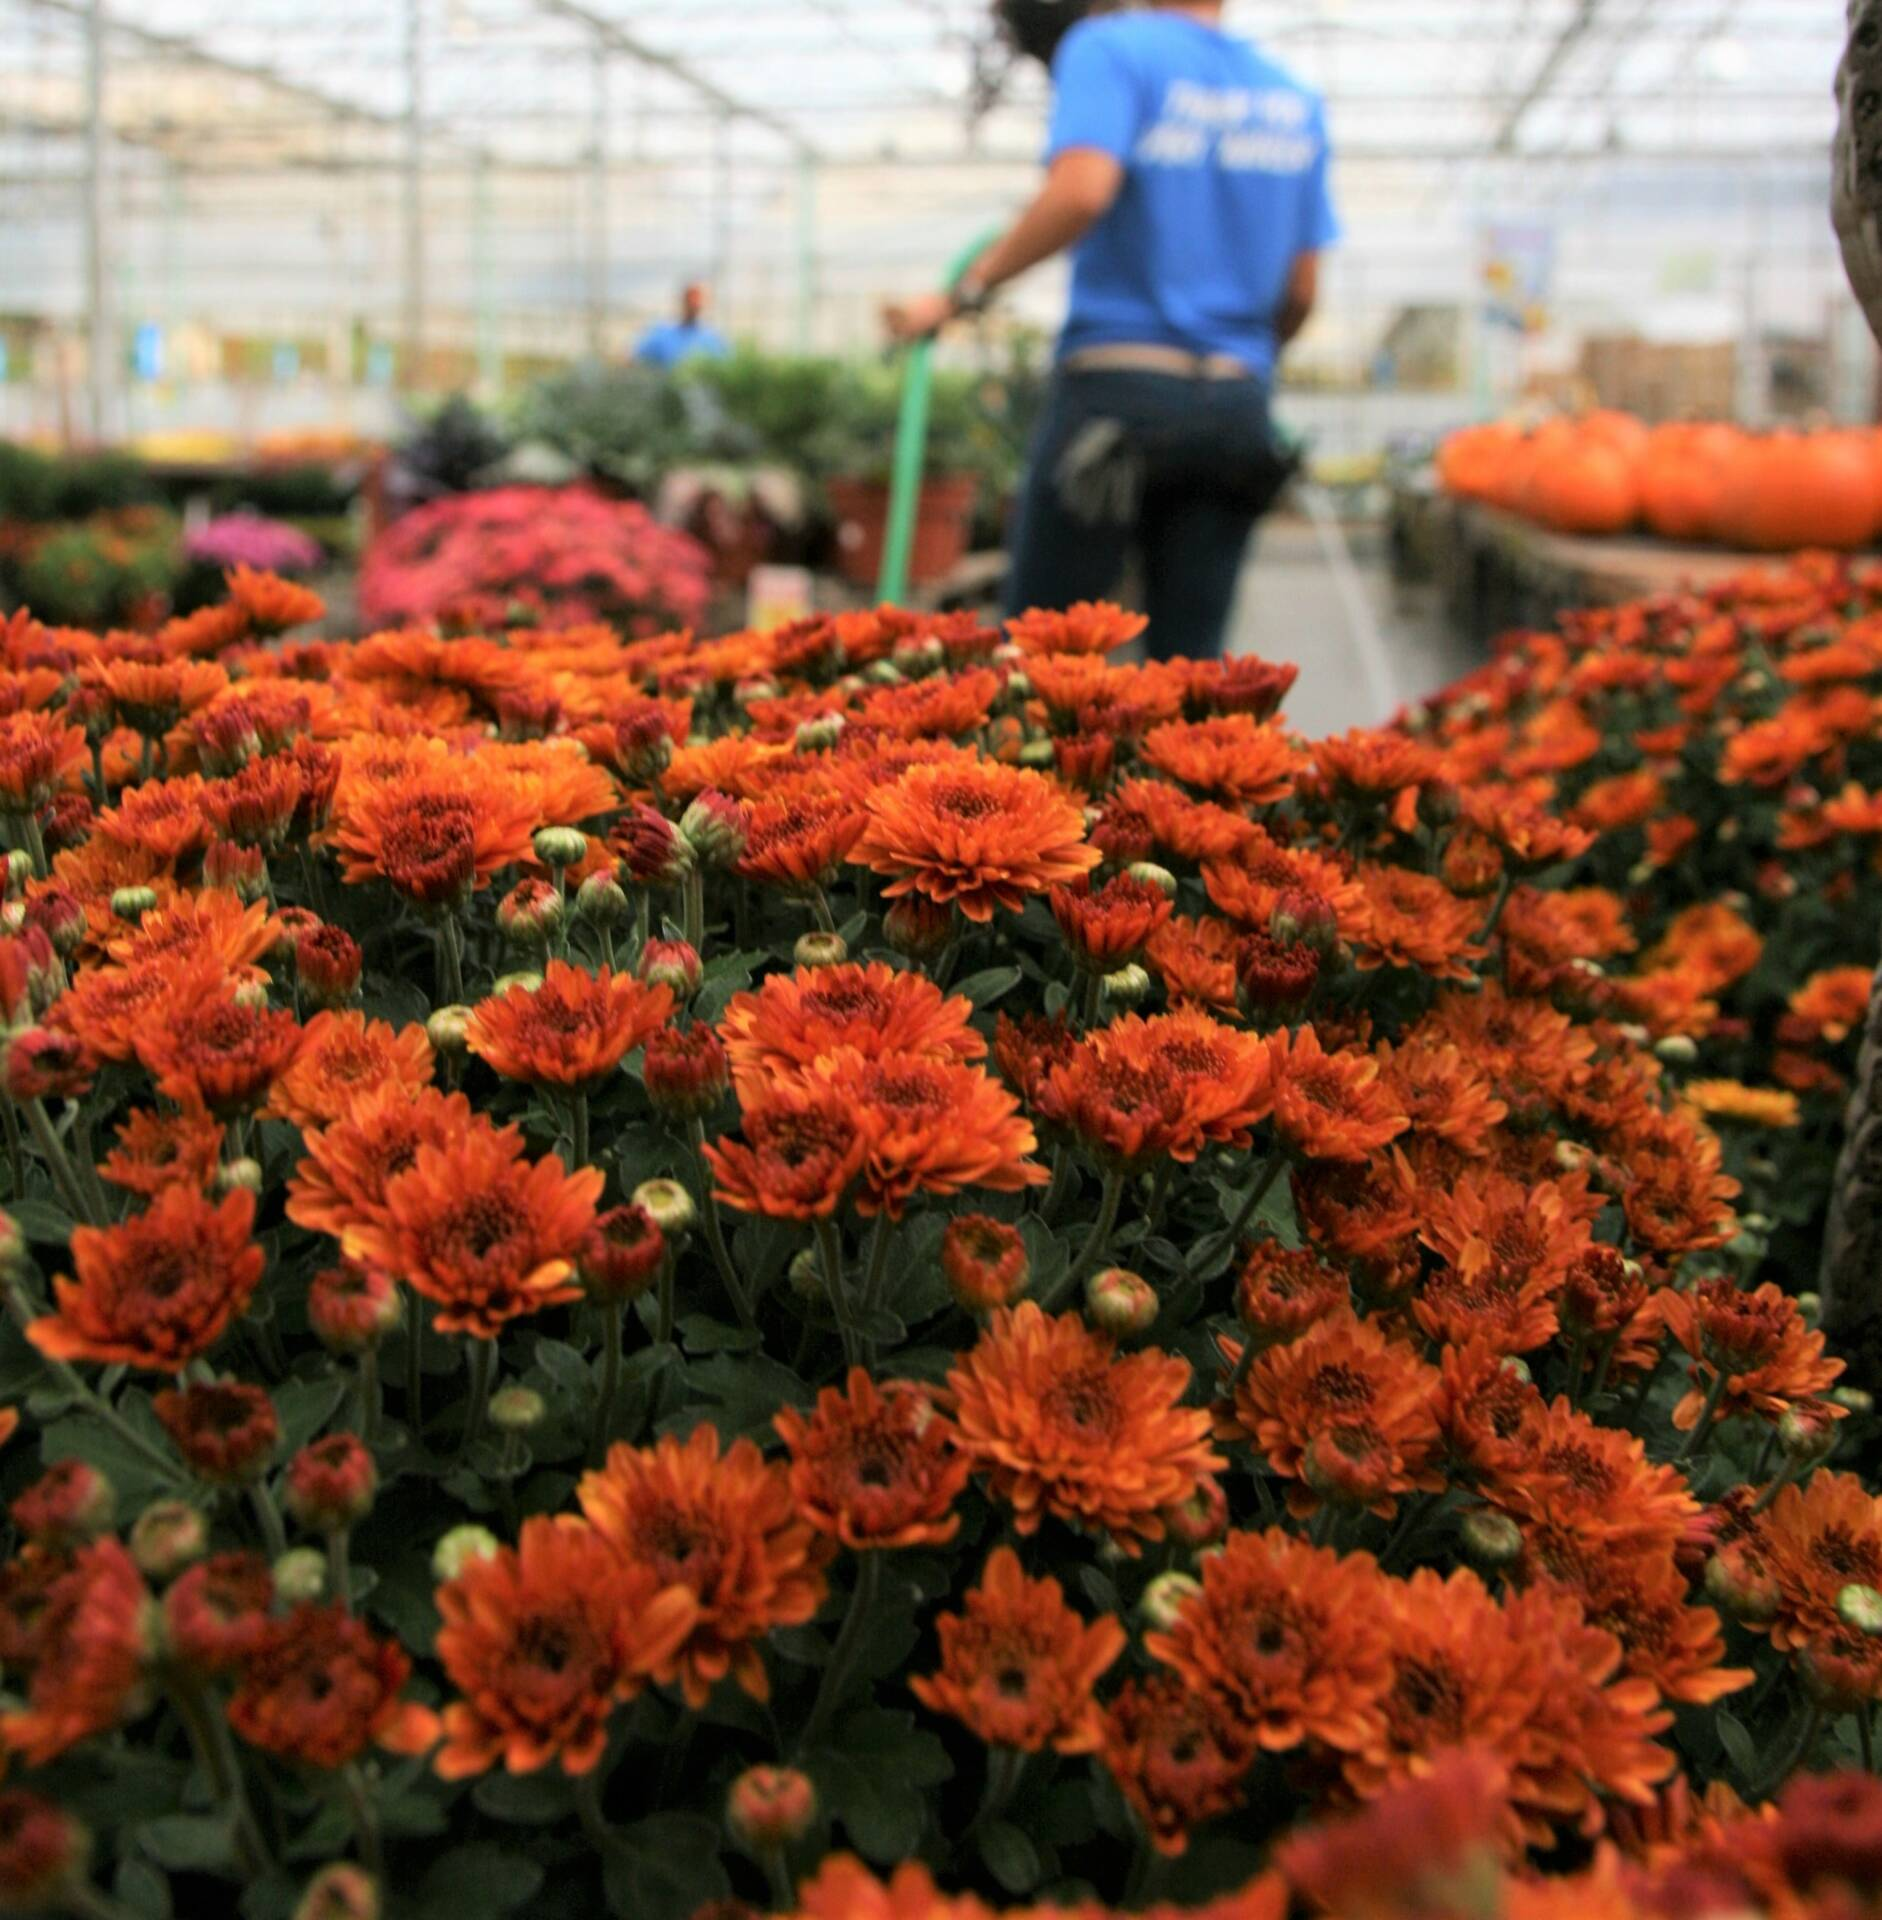 Mums and Pansies have arrived at Flowerland